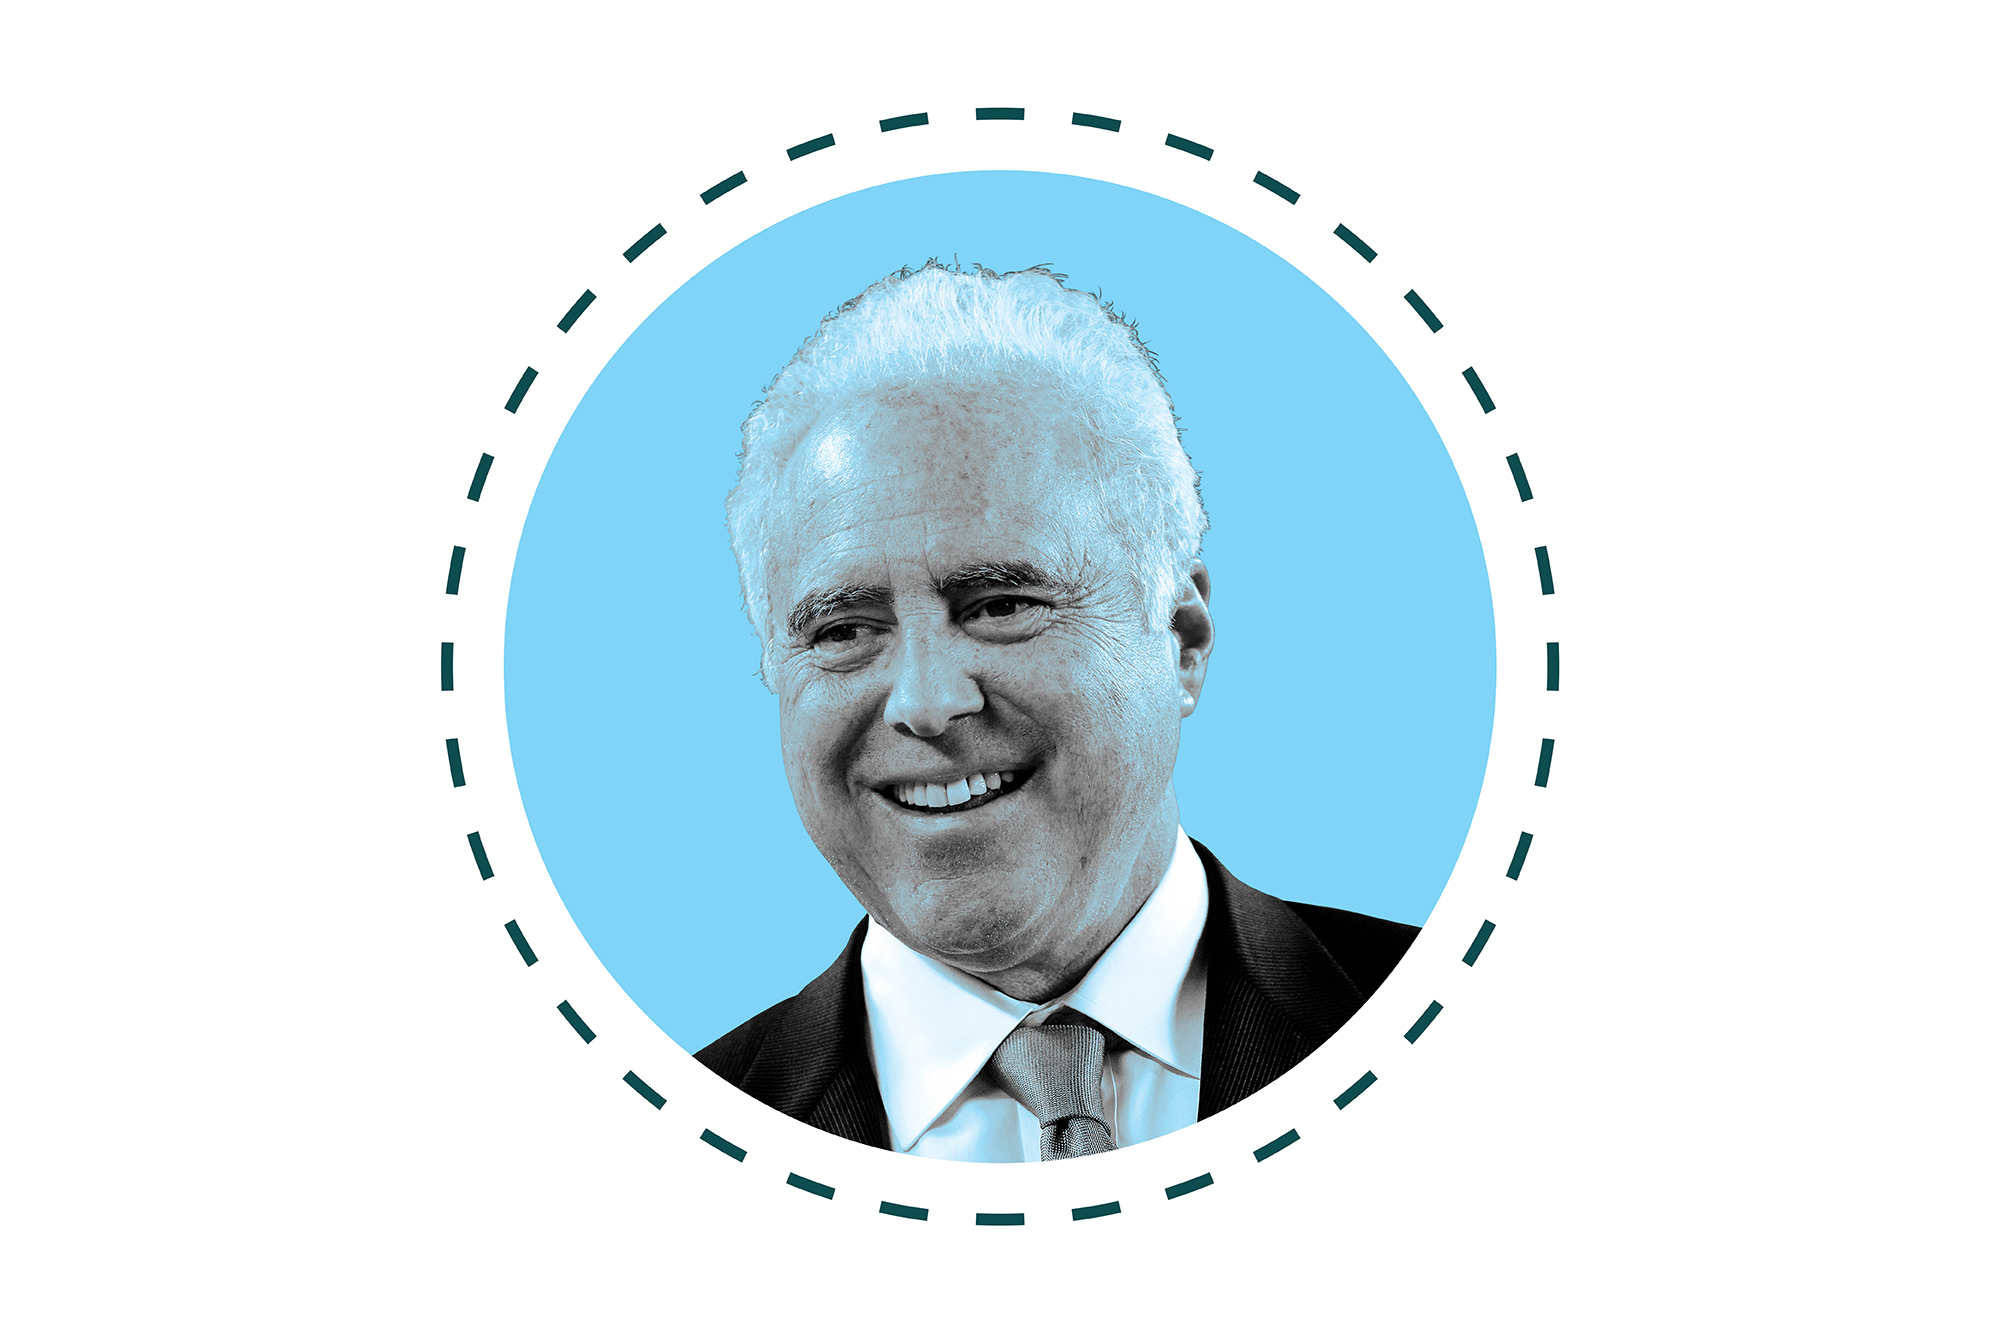 Philadelphia Eagles Owner: Jeffrey Lurie net worth, political donations